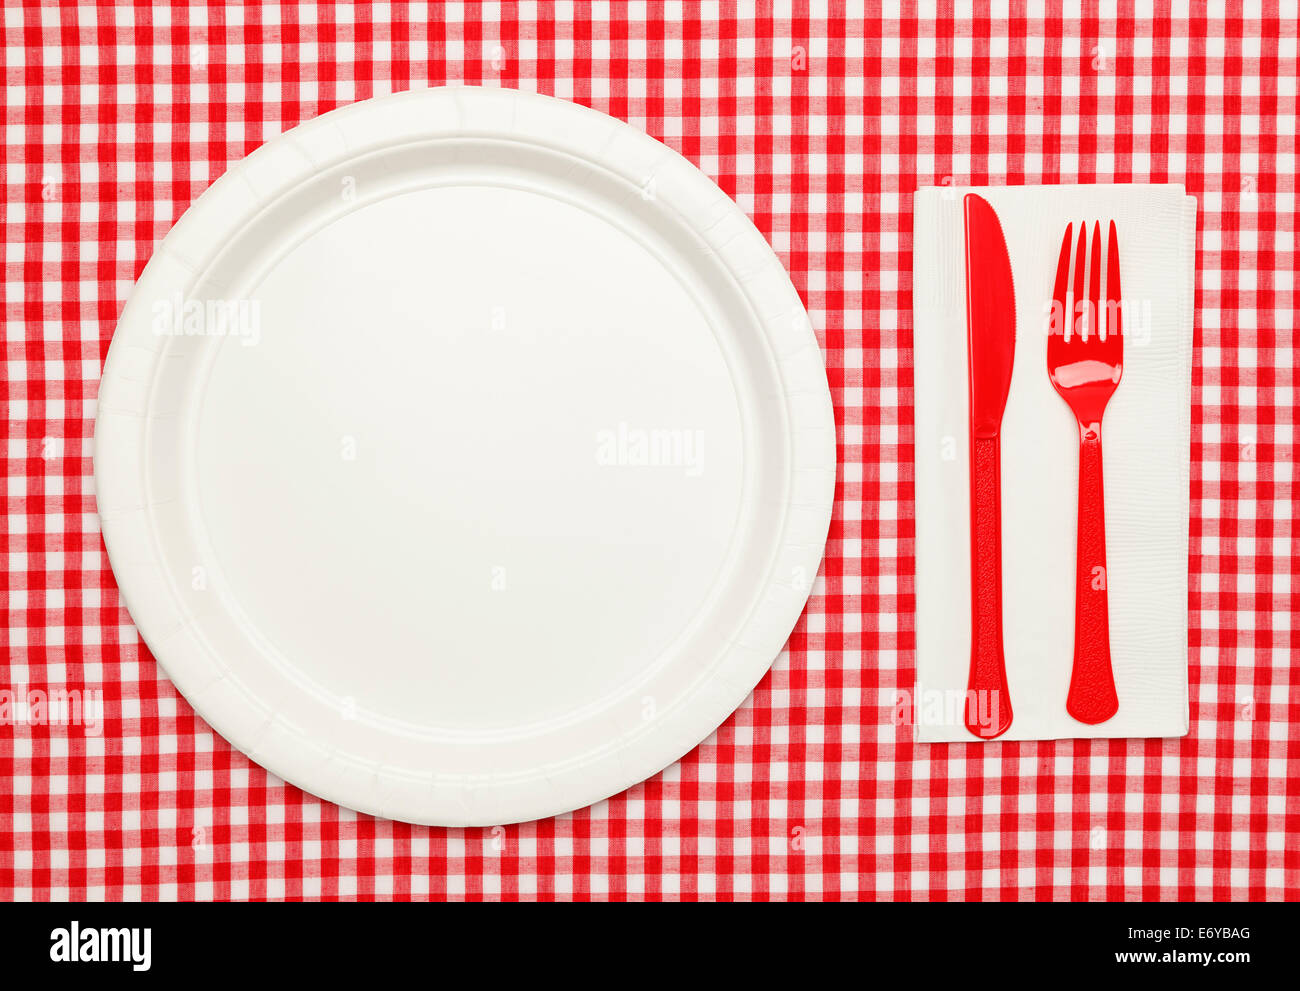 Paper Plate On Red Checkered Table Cloth Wtih Plastic Utnesils And Napkin.